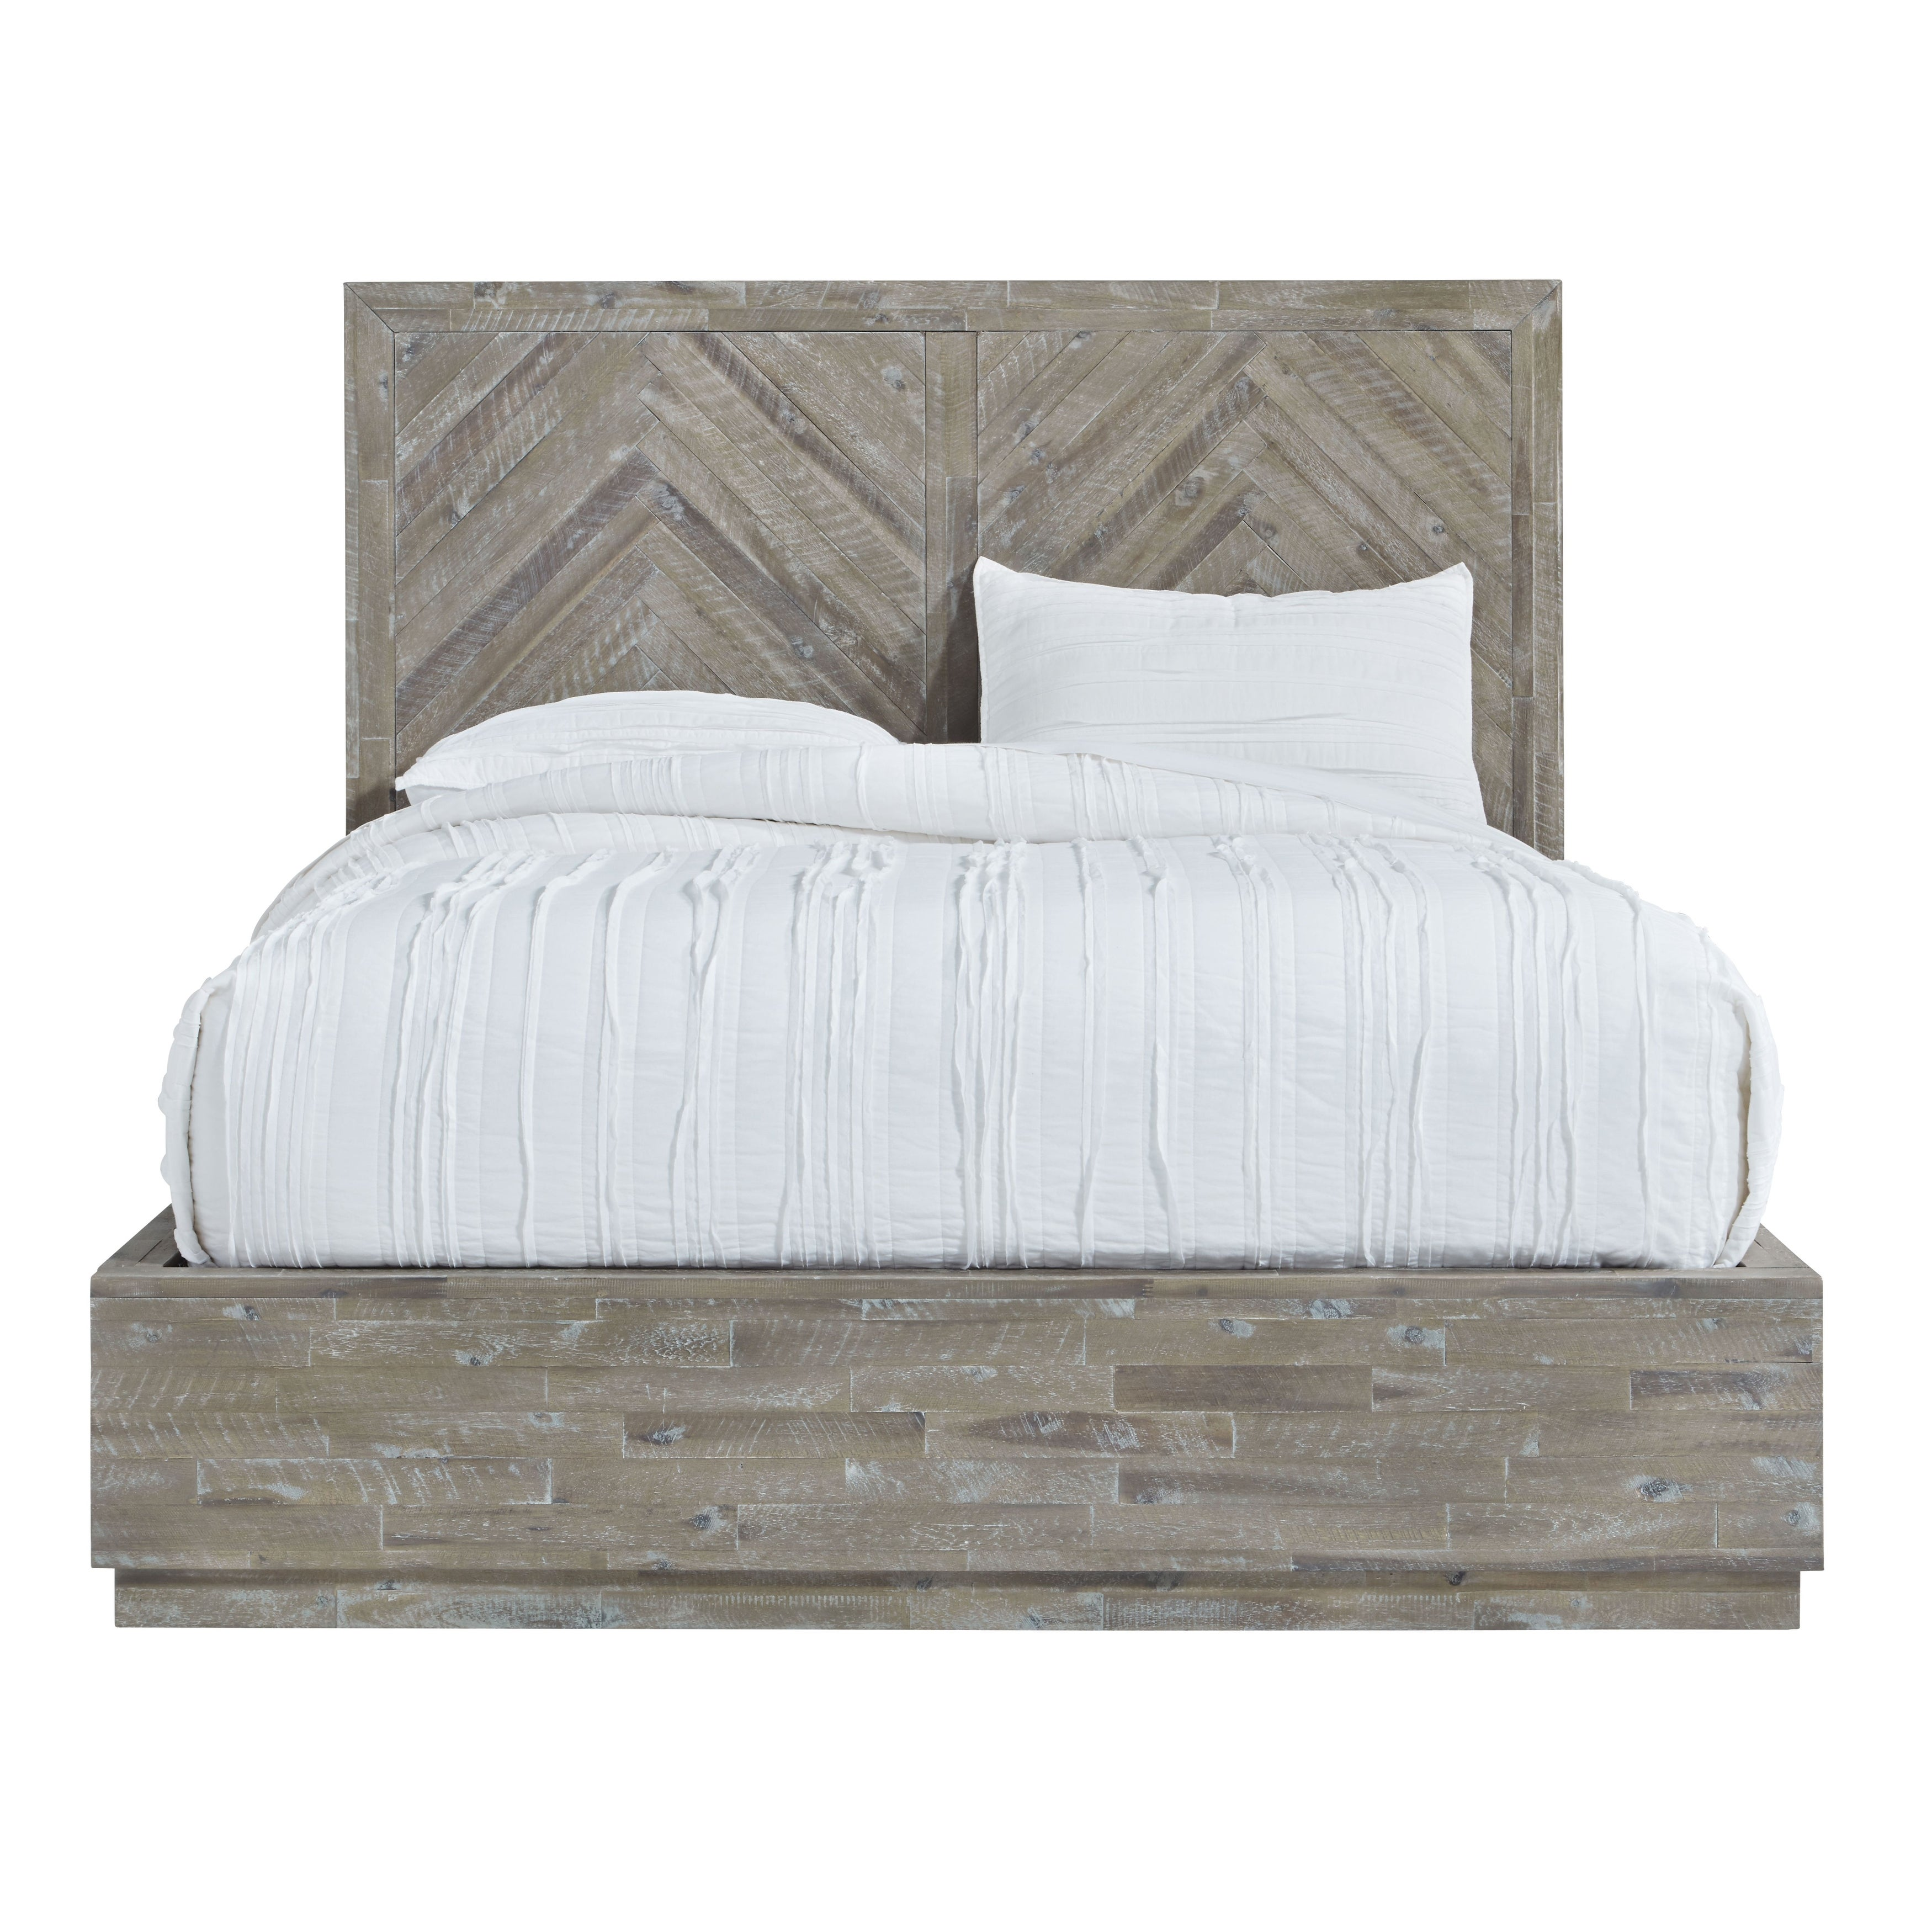 Shop Black Friday Deals On The Gray Barn Morning Star King Size Solid Wood Storage Bed In Rustic Latte Overstock 29345079